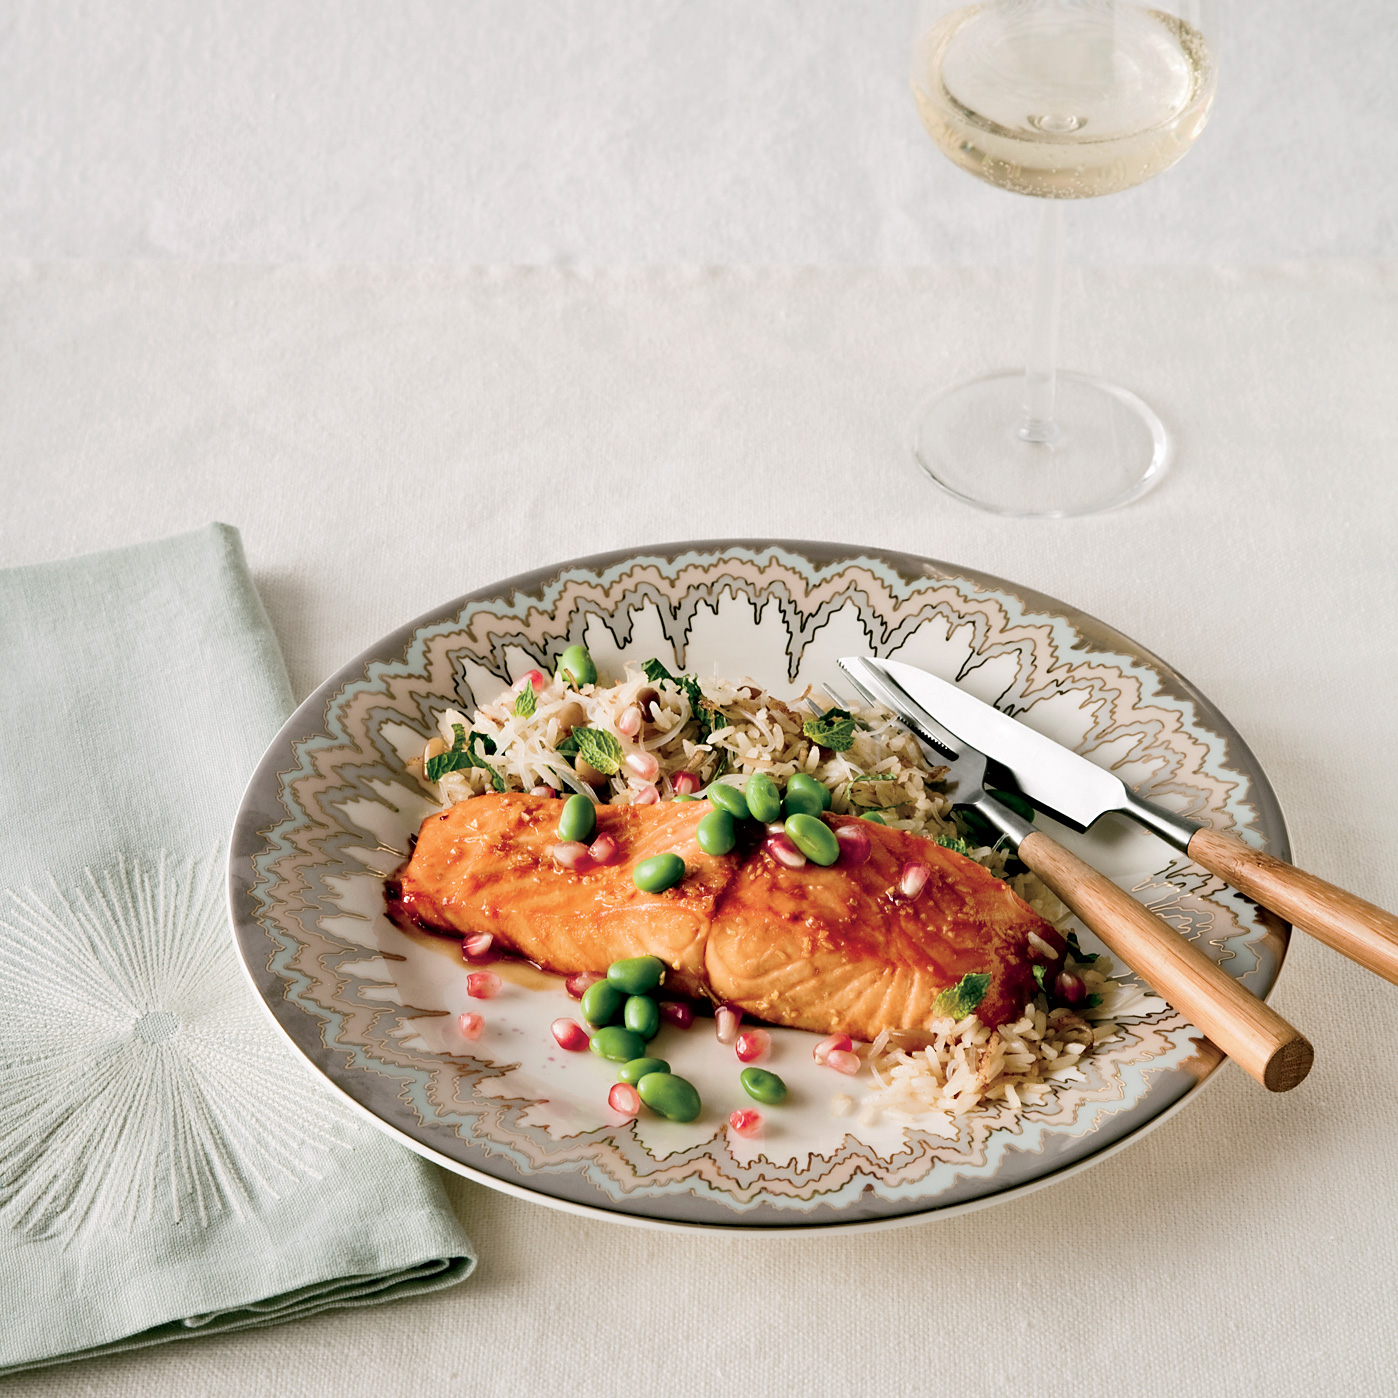 Pomegranate-Glazed Salmon with Armenian Rice